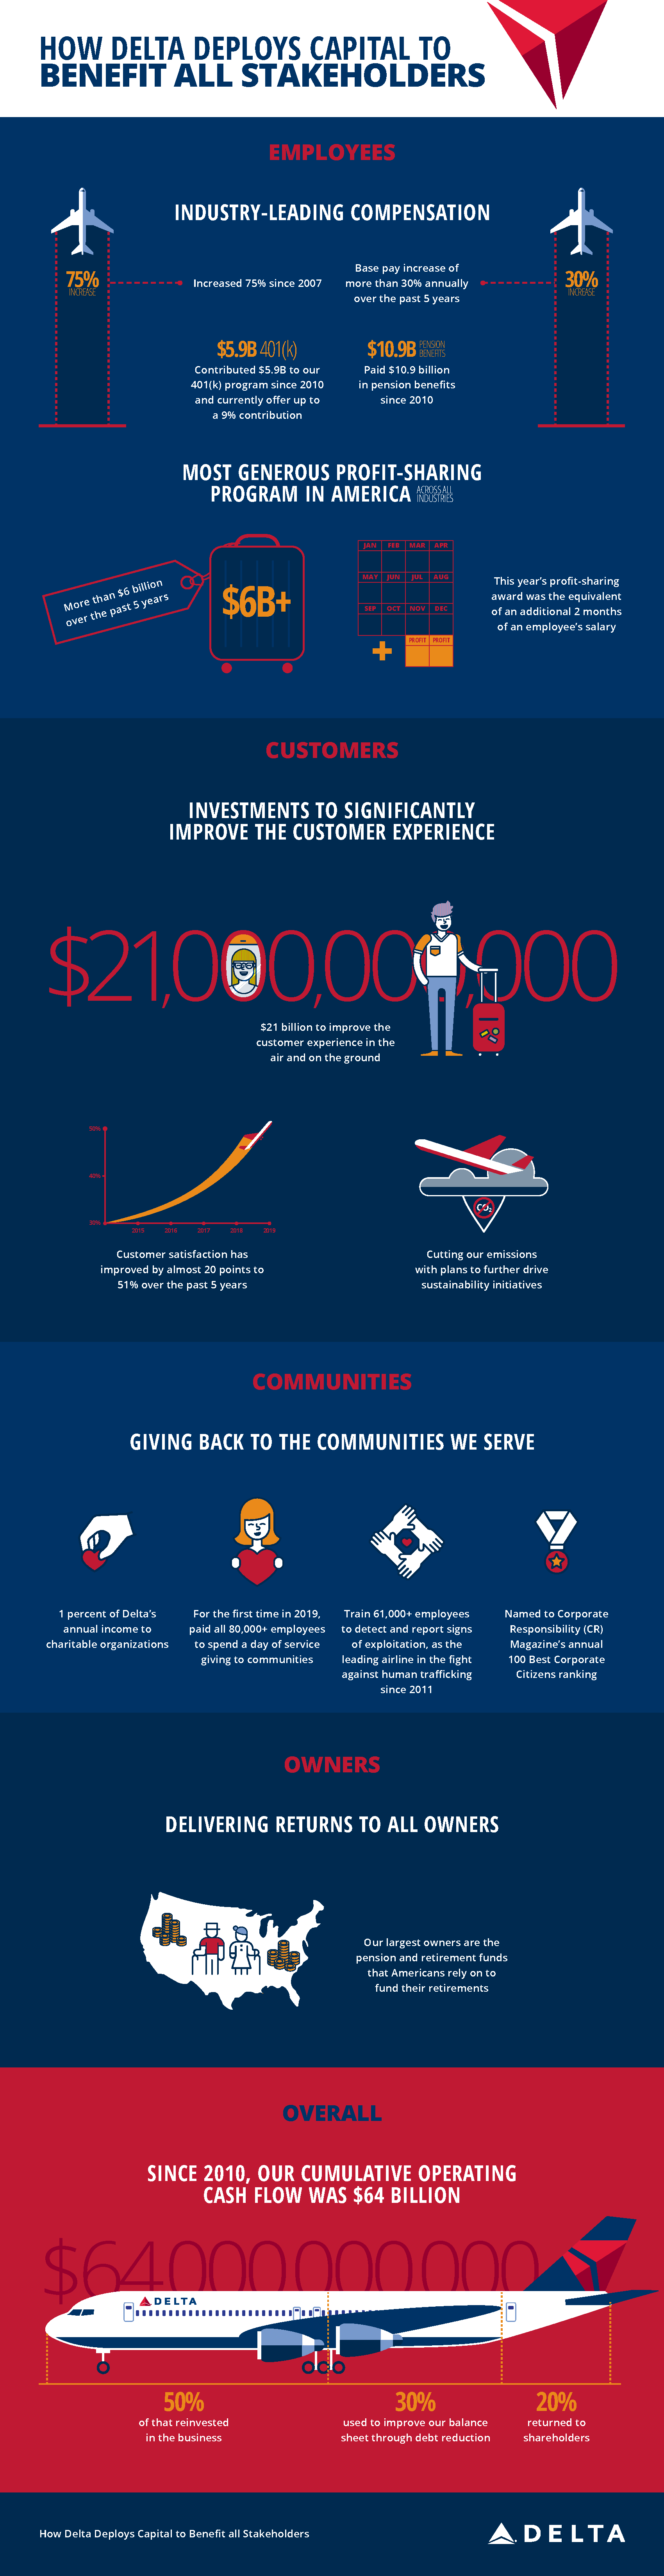 Infographic: How Delta deploys capital to benefit all stakeholders